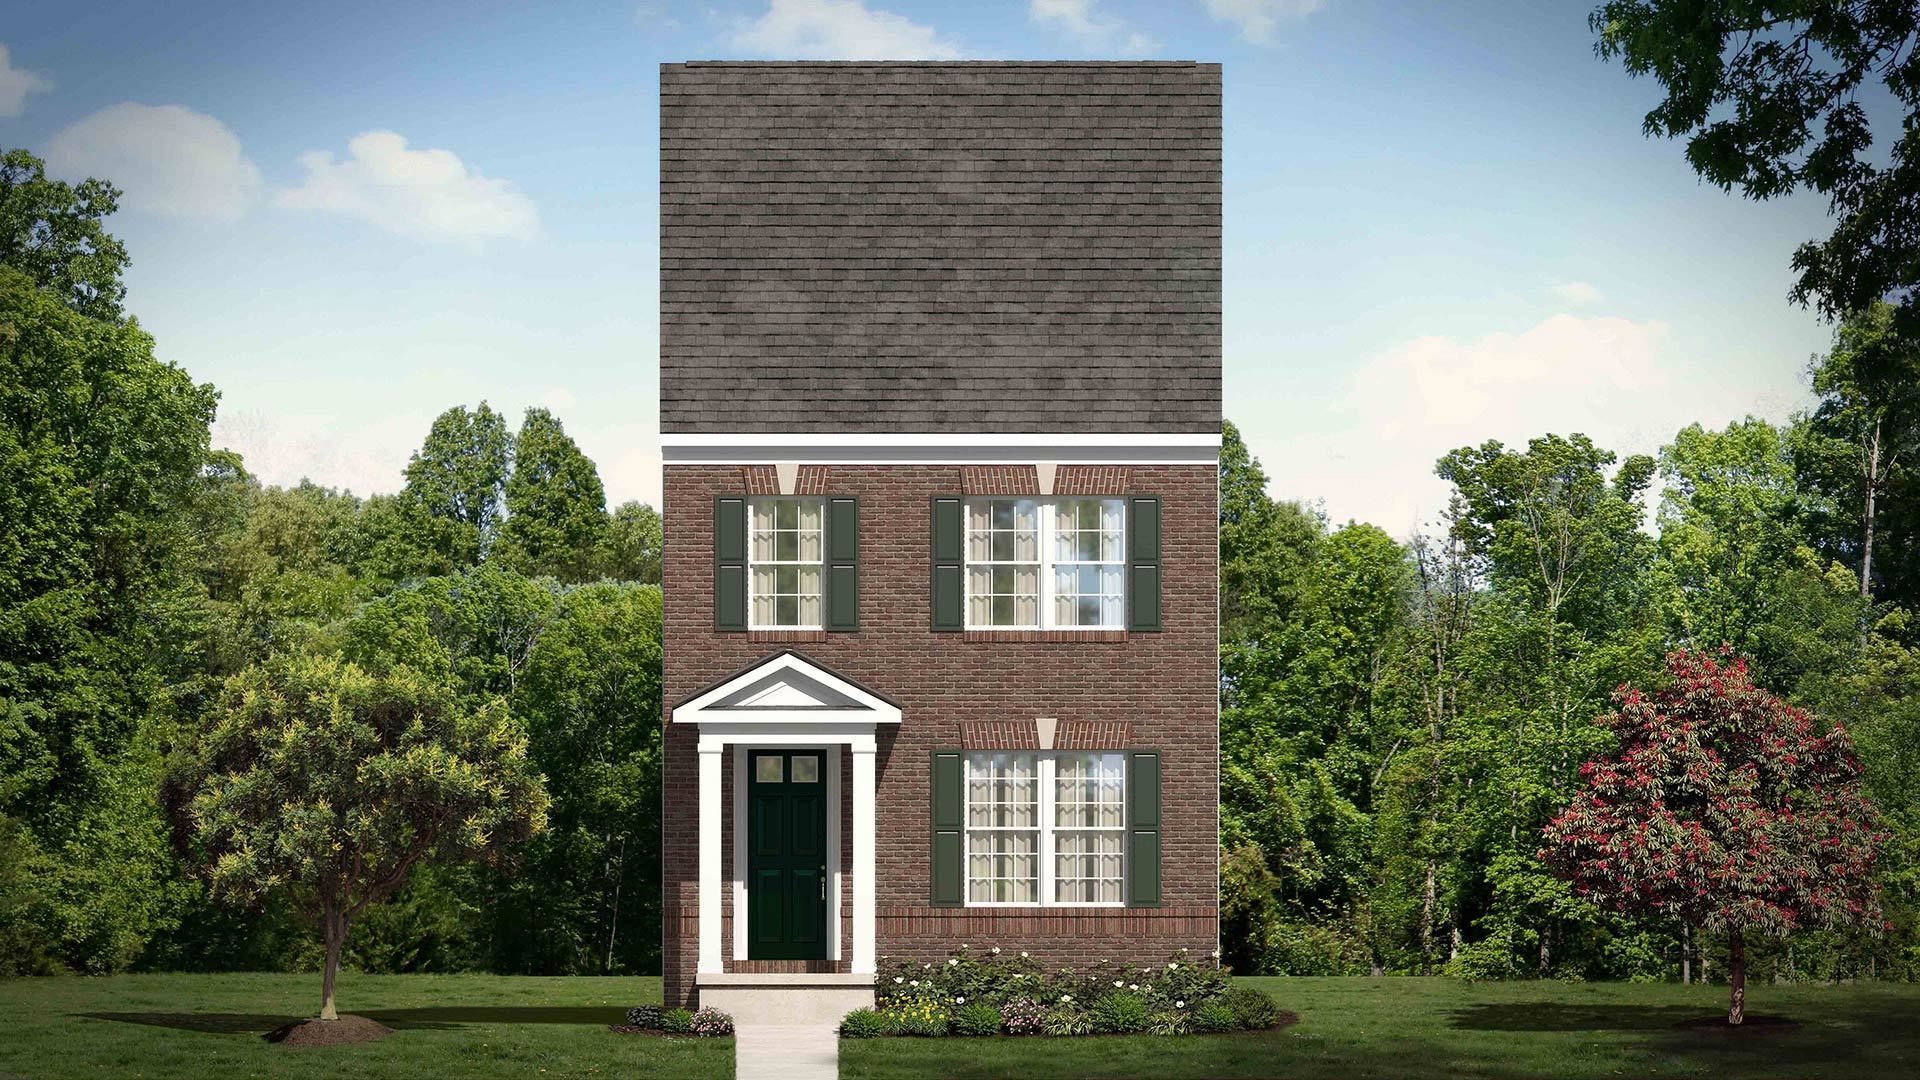 Waverly plan chapel hill north carolina 27516 waverly plan at winmore by stanley martin homes for Martin home exteriors jacksonville fl